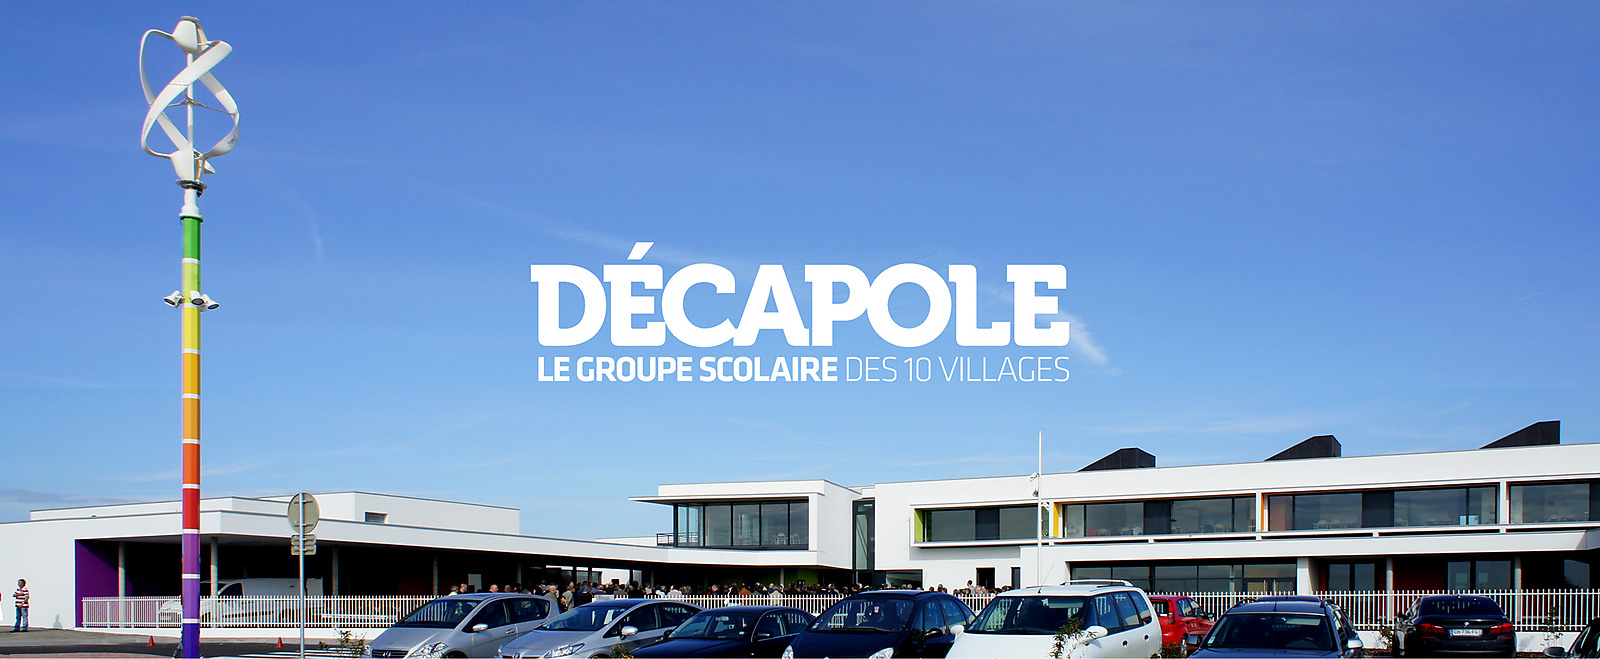 GROUPE SCOLAIRE INTERCOMMUNAL DÉCAPOLE